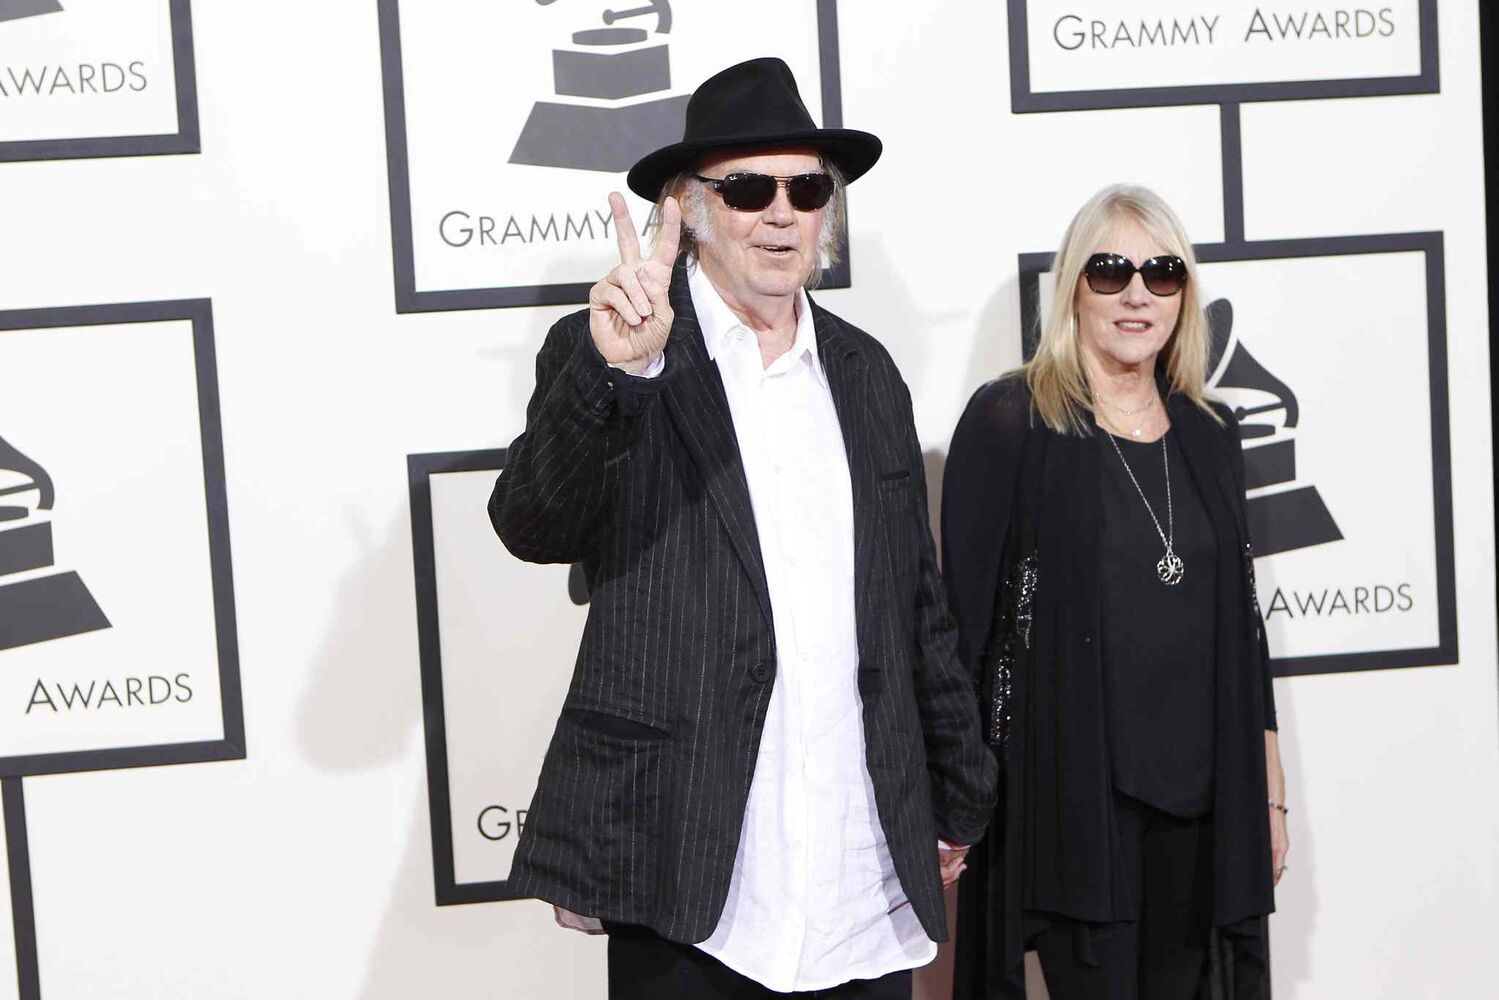 Neil Young and his wife Pegi arrive at the 56th Annual Grammy Awards.